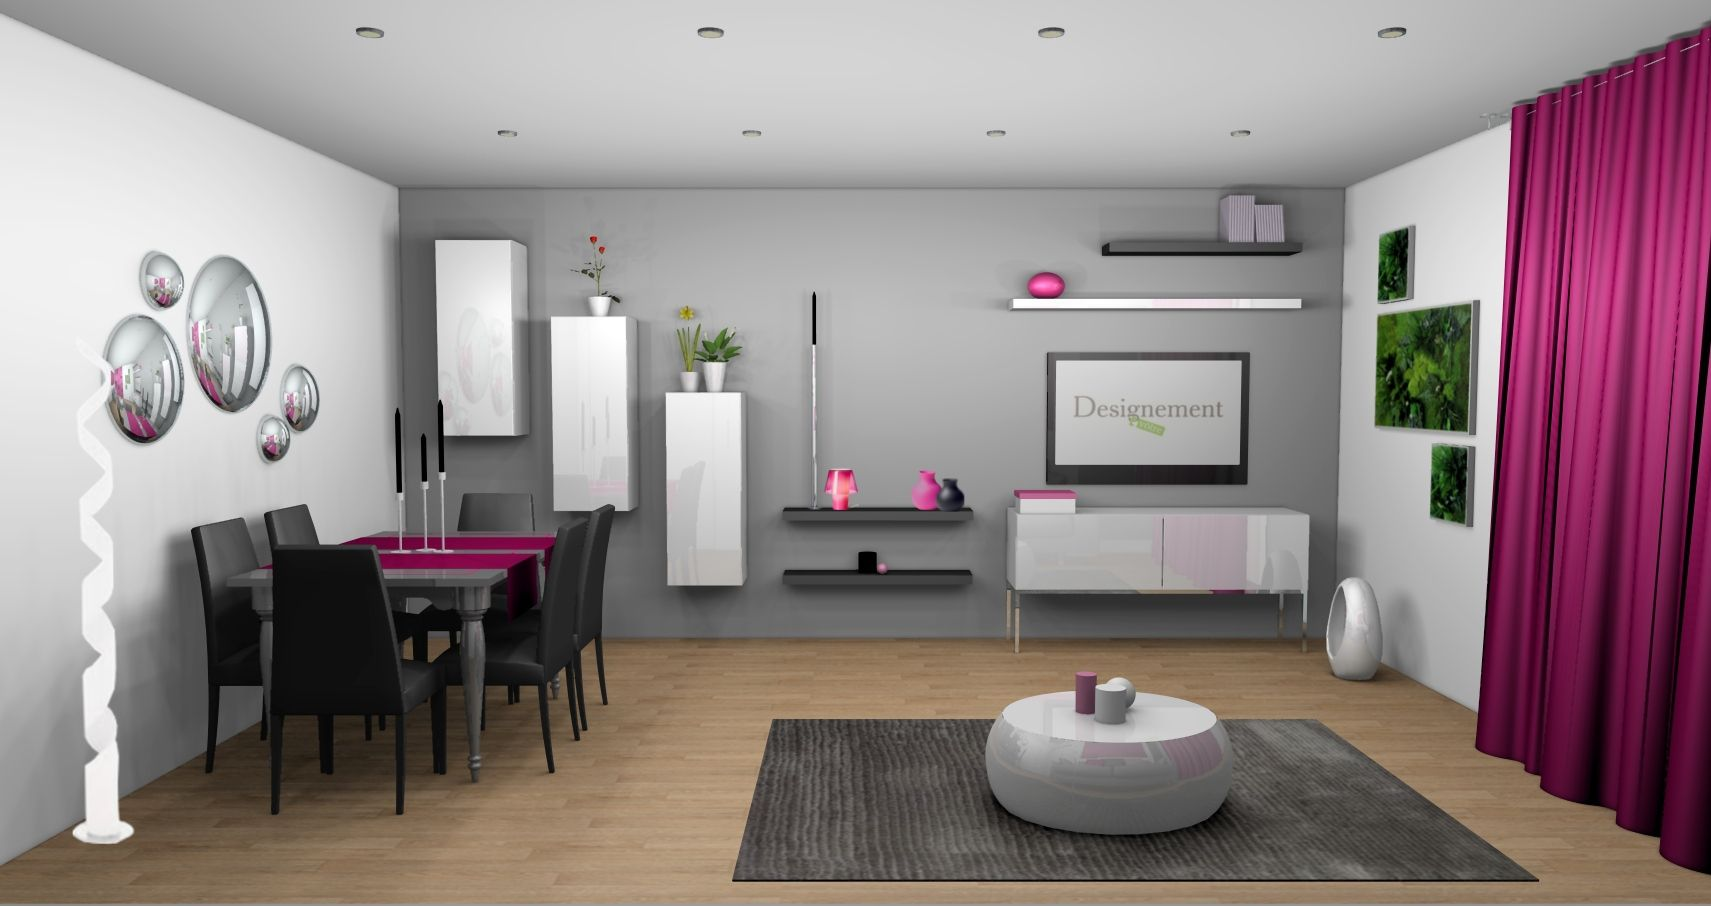 D co salon m r gris et blanc touche de couleur fushia for Deco salon design contemporain